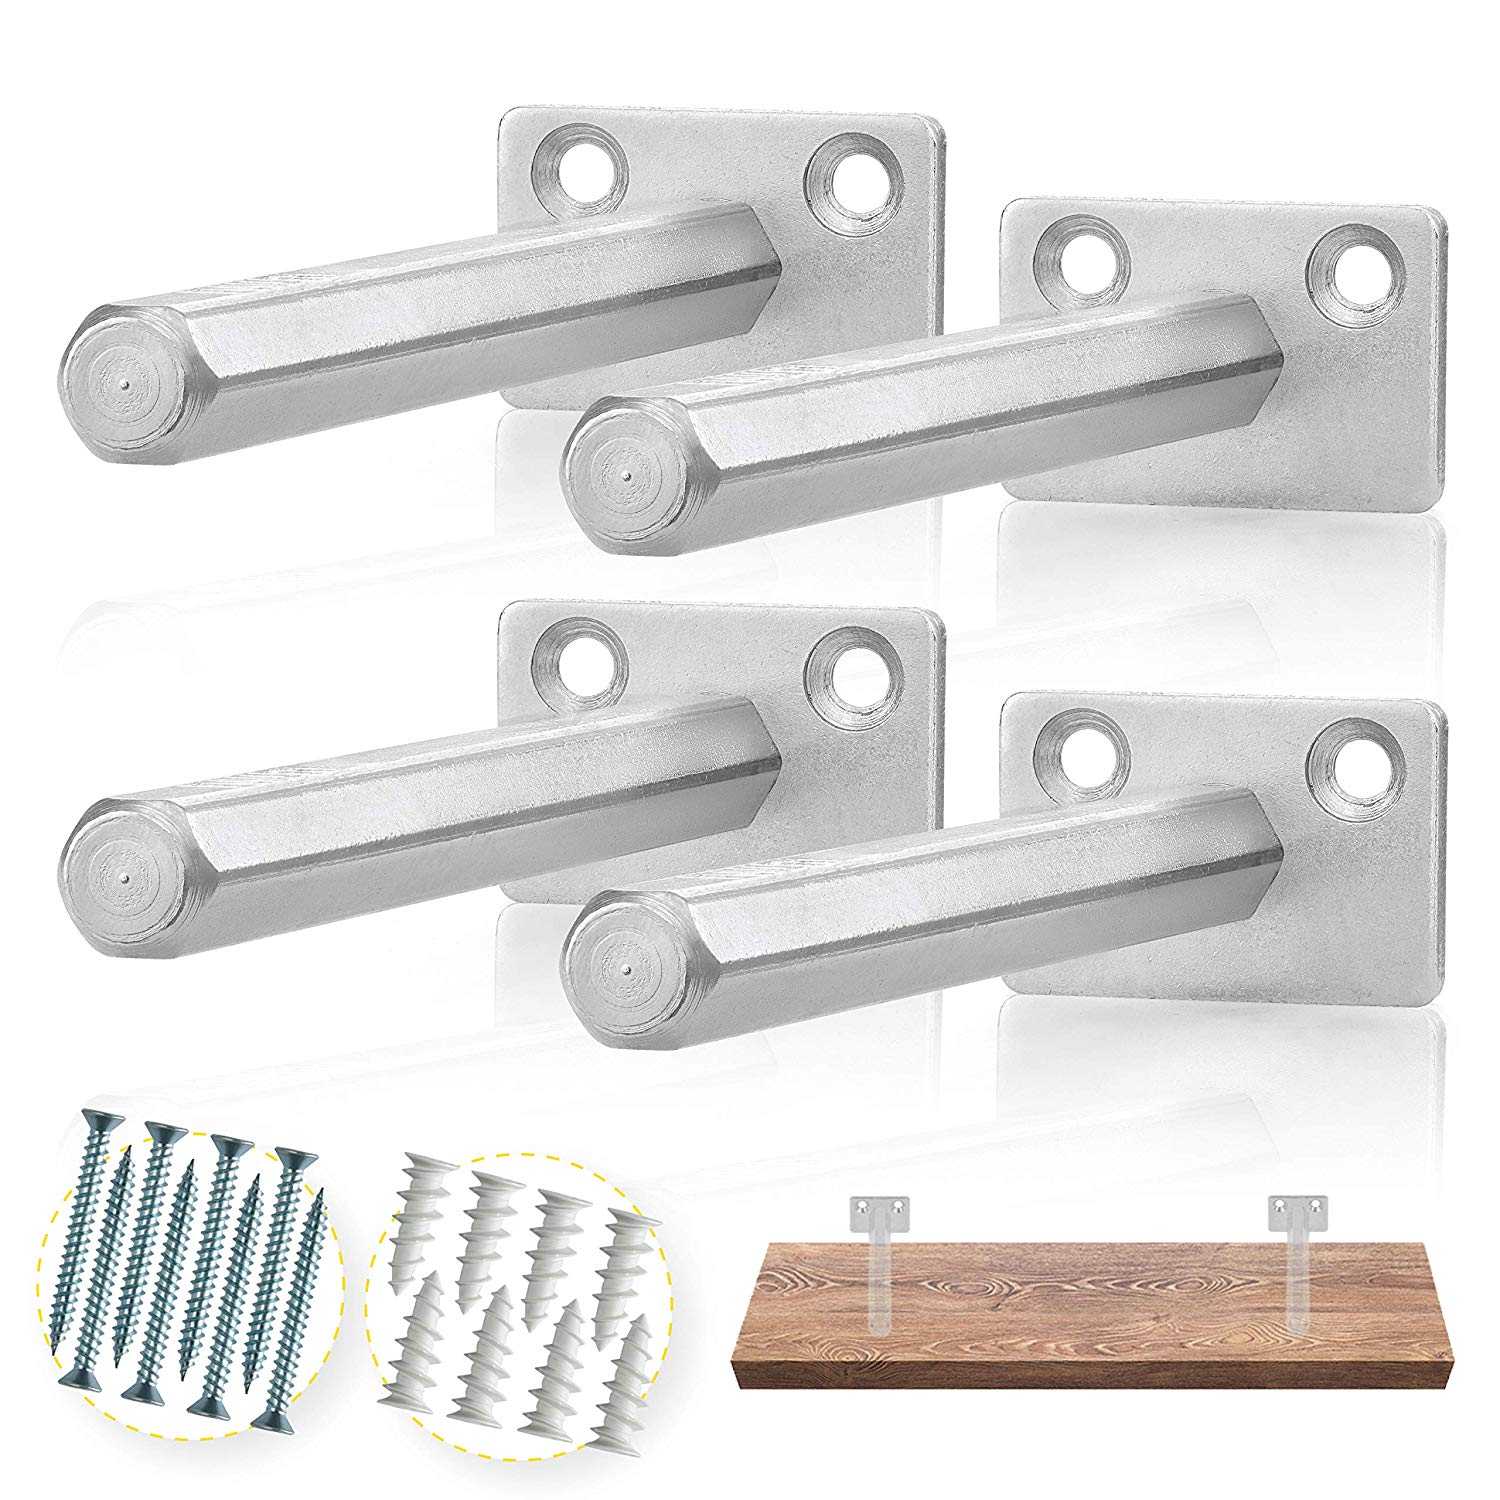 batoda floating shelf bracket pcs galvanized steel xuzl support pins blind supports hidden brackets for wood shelves concealed stackable shoe storage stainless kitchen wall